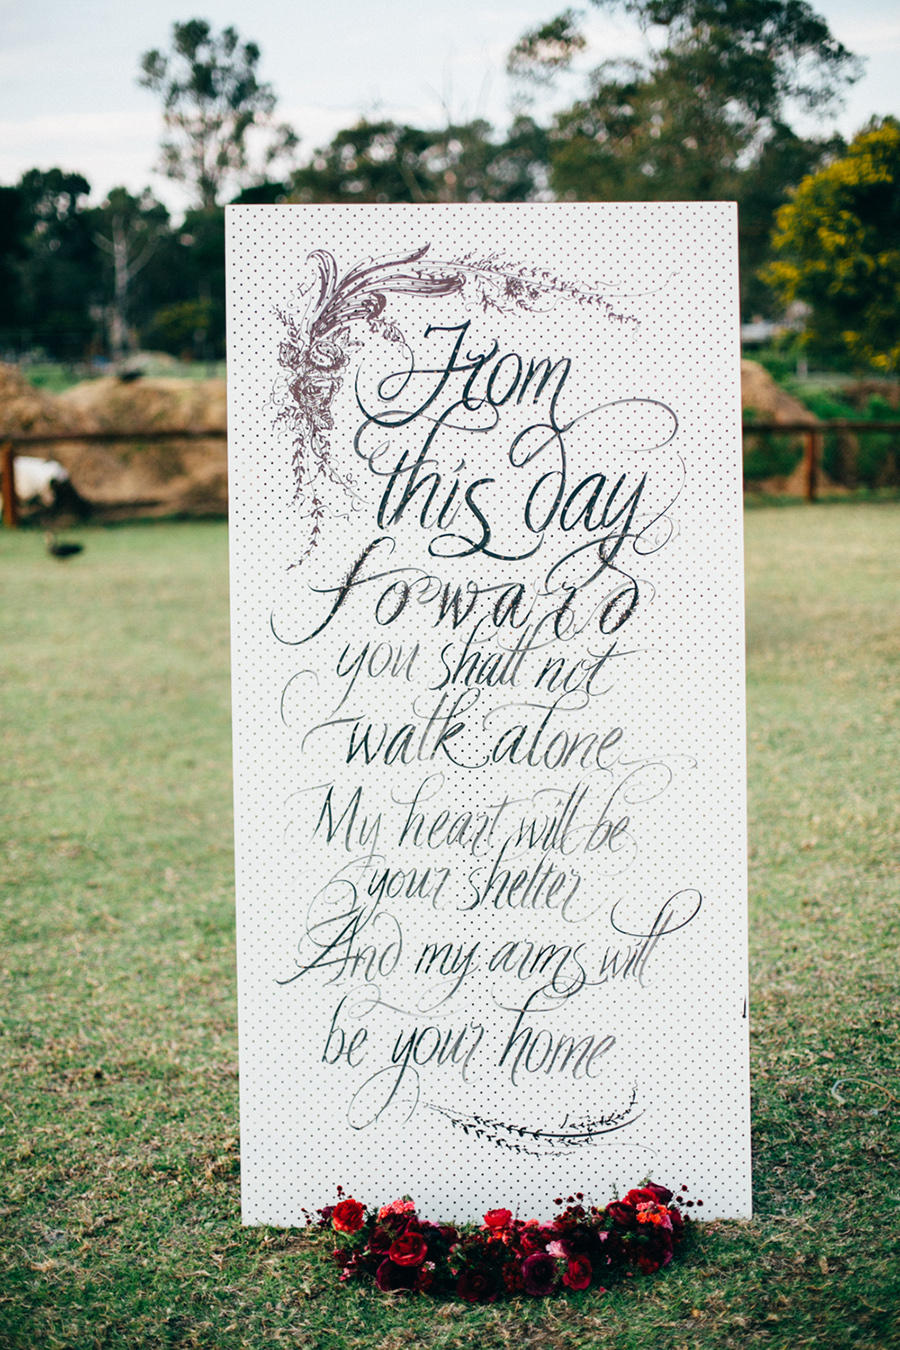 monochrome wedding signage